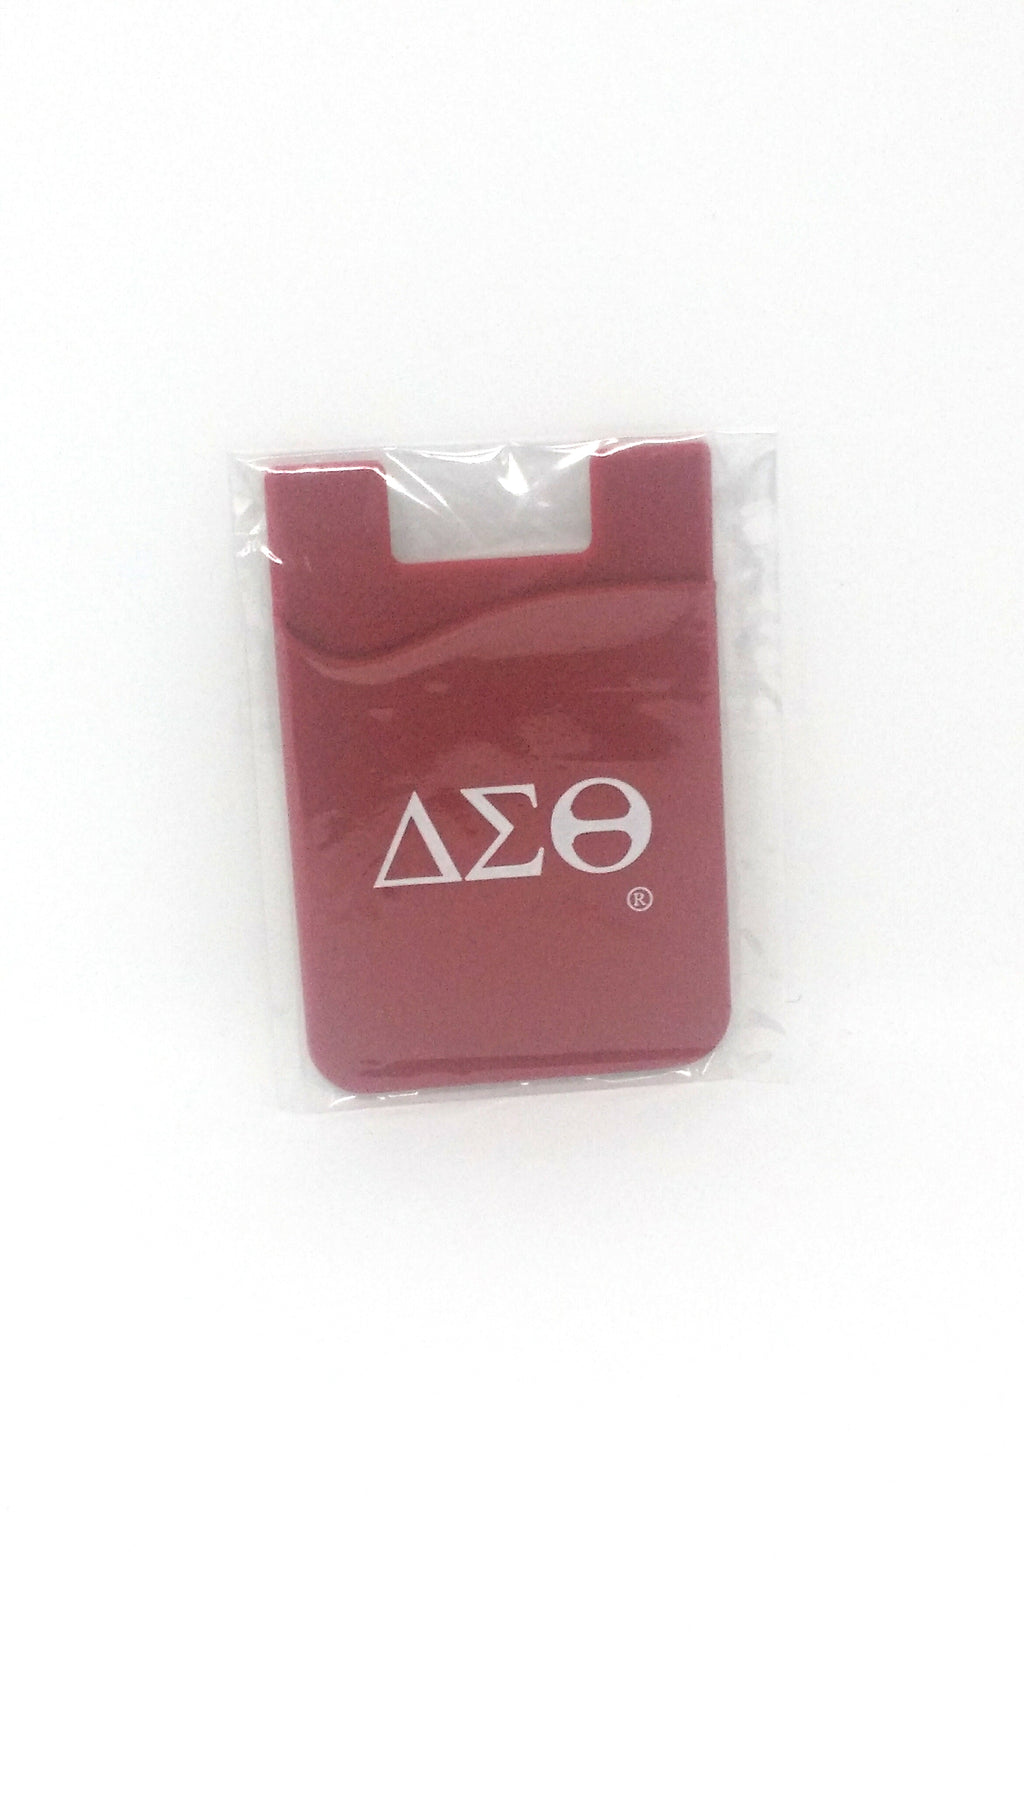 Delta Sigma Theta Silicone Phone Pocket/Card Holder